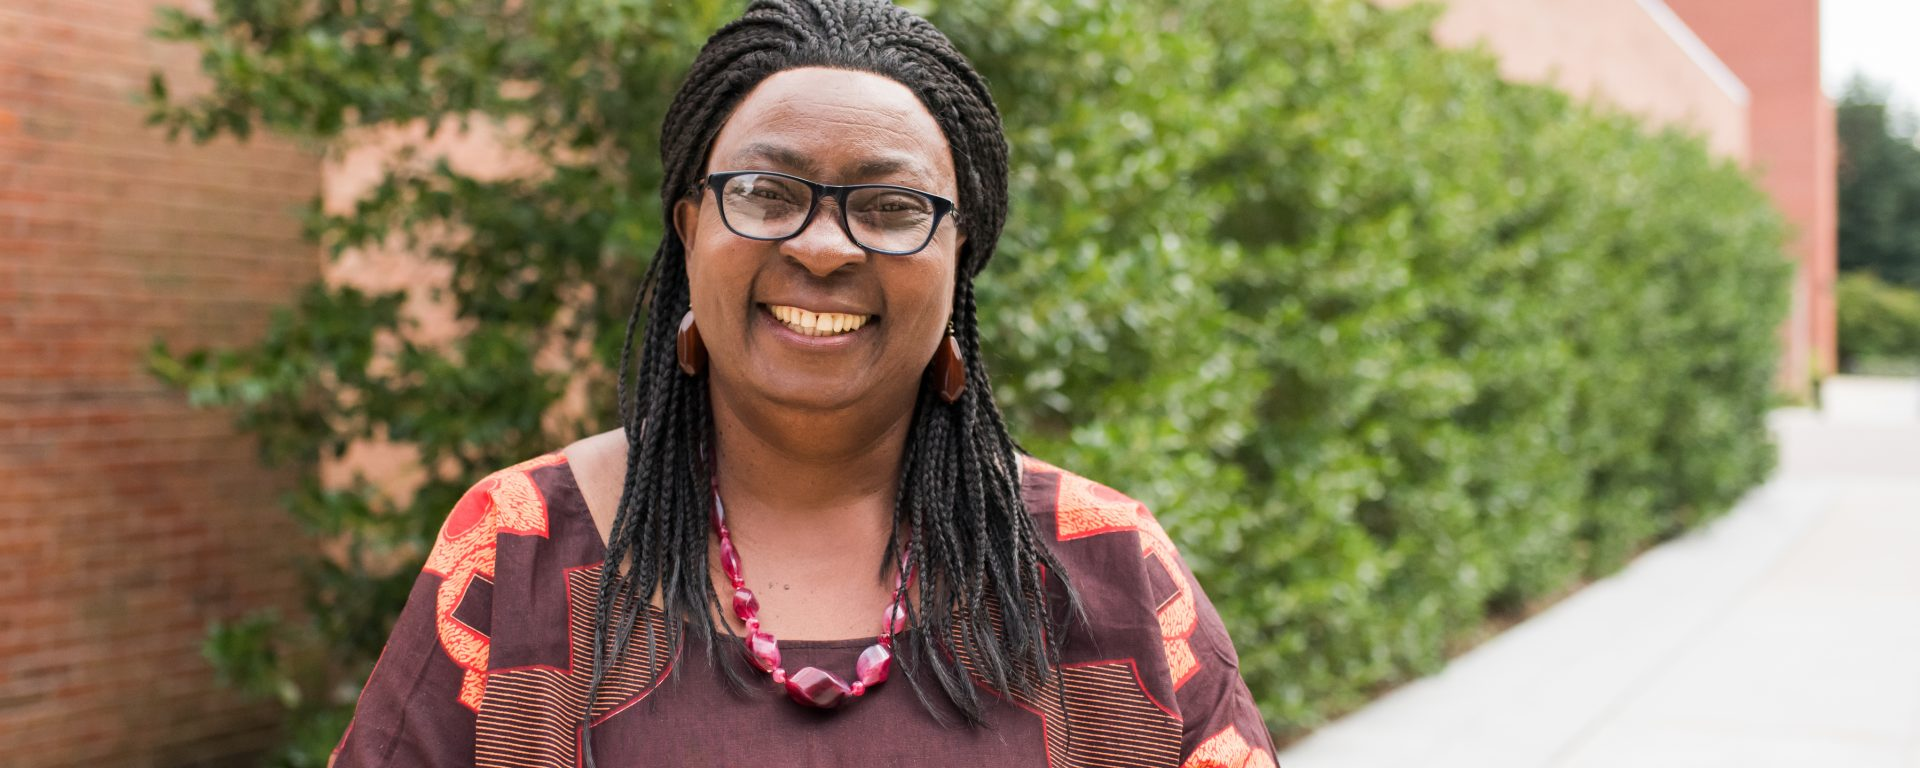 UMBC's Gloria Chuku is named the 2020 – 21 Lipitz Professor for her research on the Igbo people of Nigeria